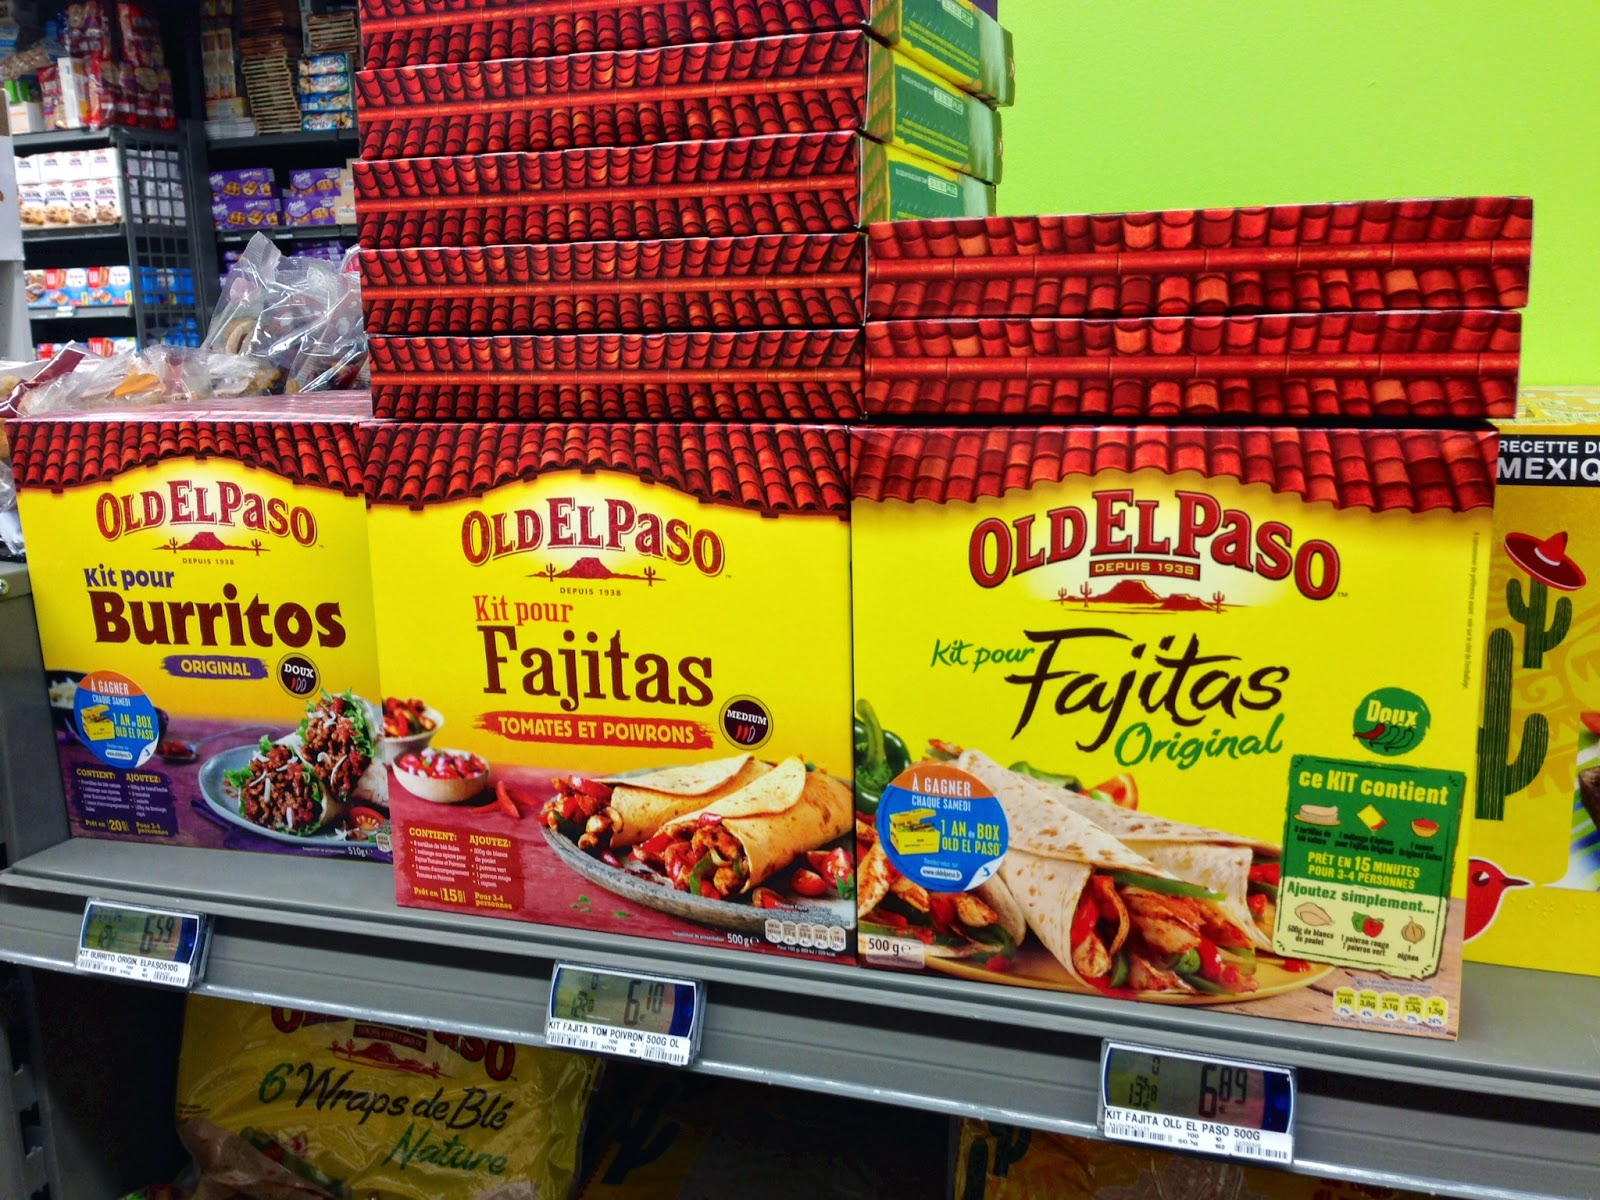 Tex-Mex in France, Tex-Mex in Paris, Tex-Mex, Old el Paso